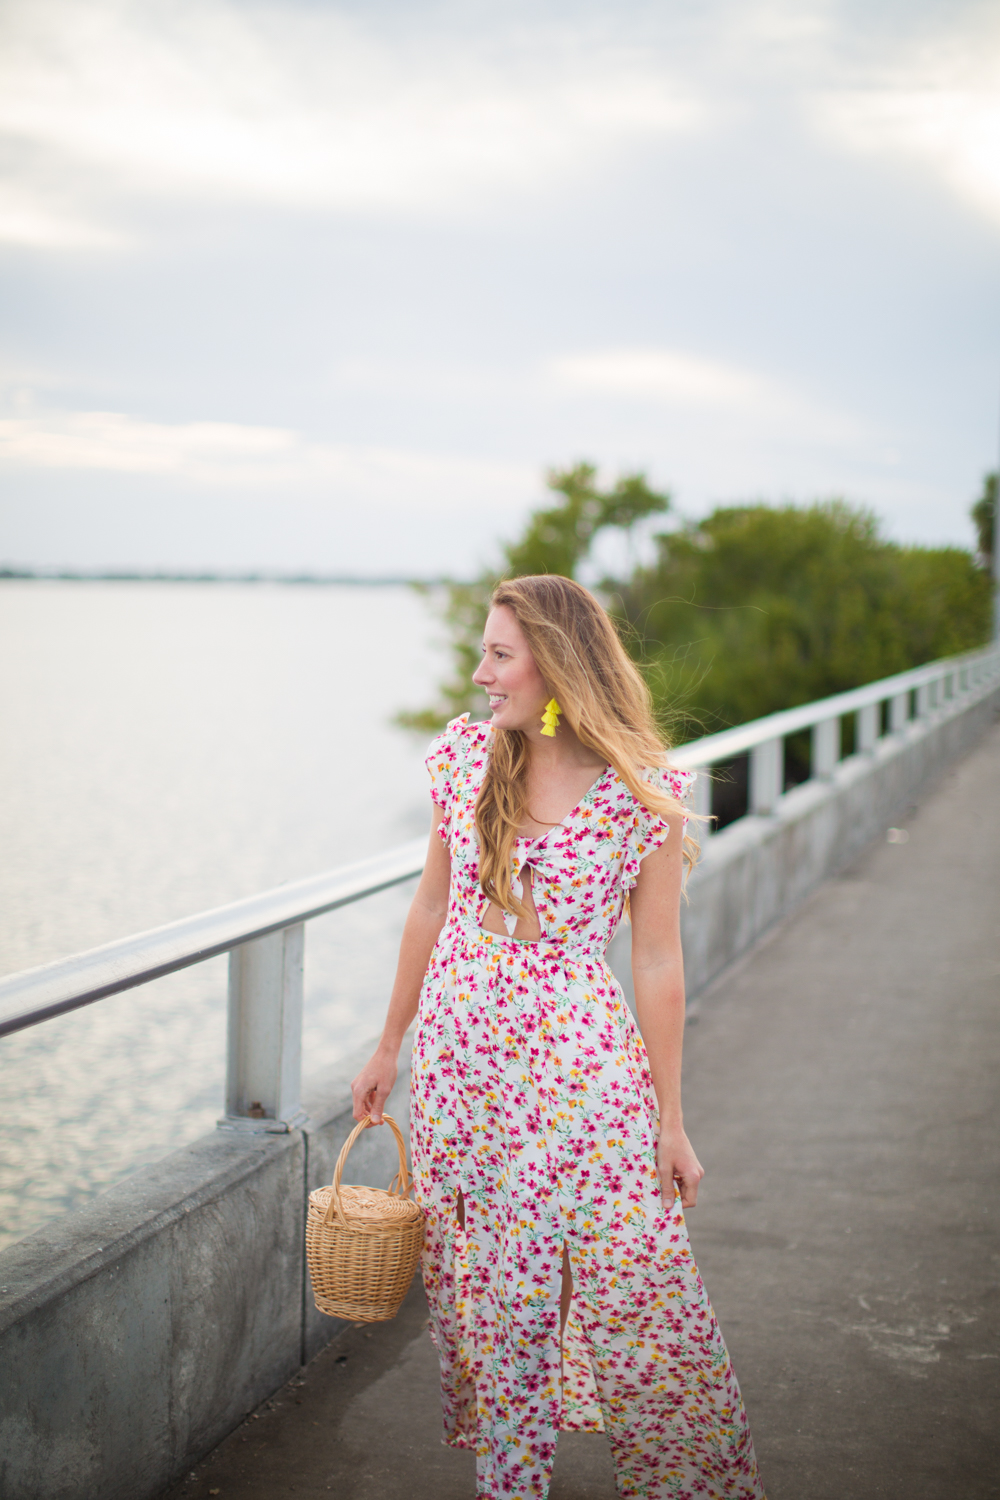 Floral Dresses for Spring / How to Style a Floral Dress / What to Wear on a Warm-Weather Vacation - Sunshine Style: A Florida Based Fashion Blog